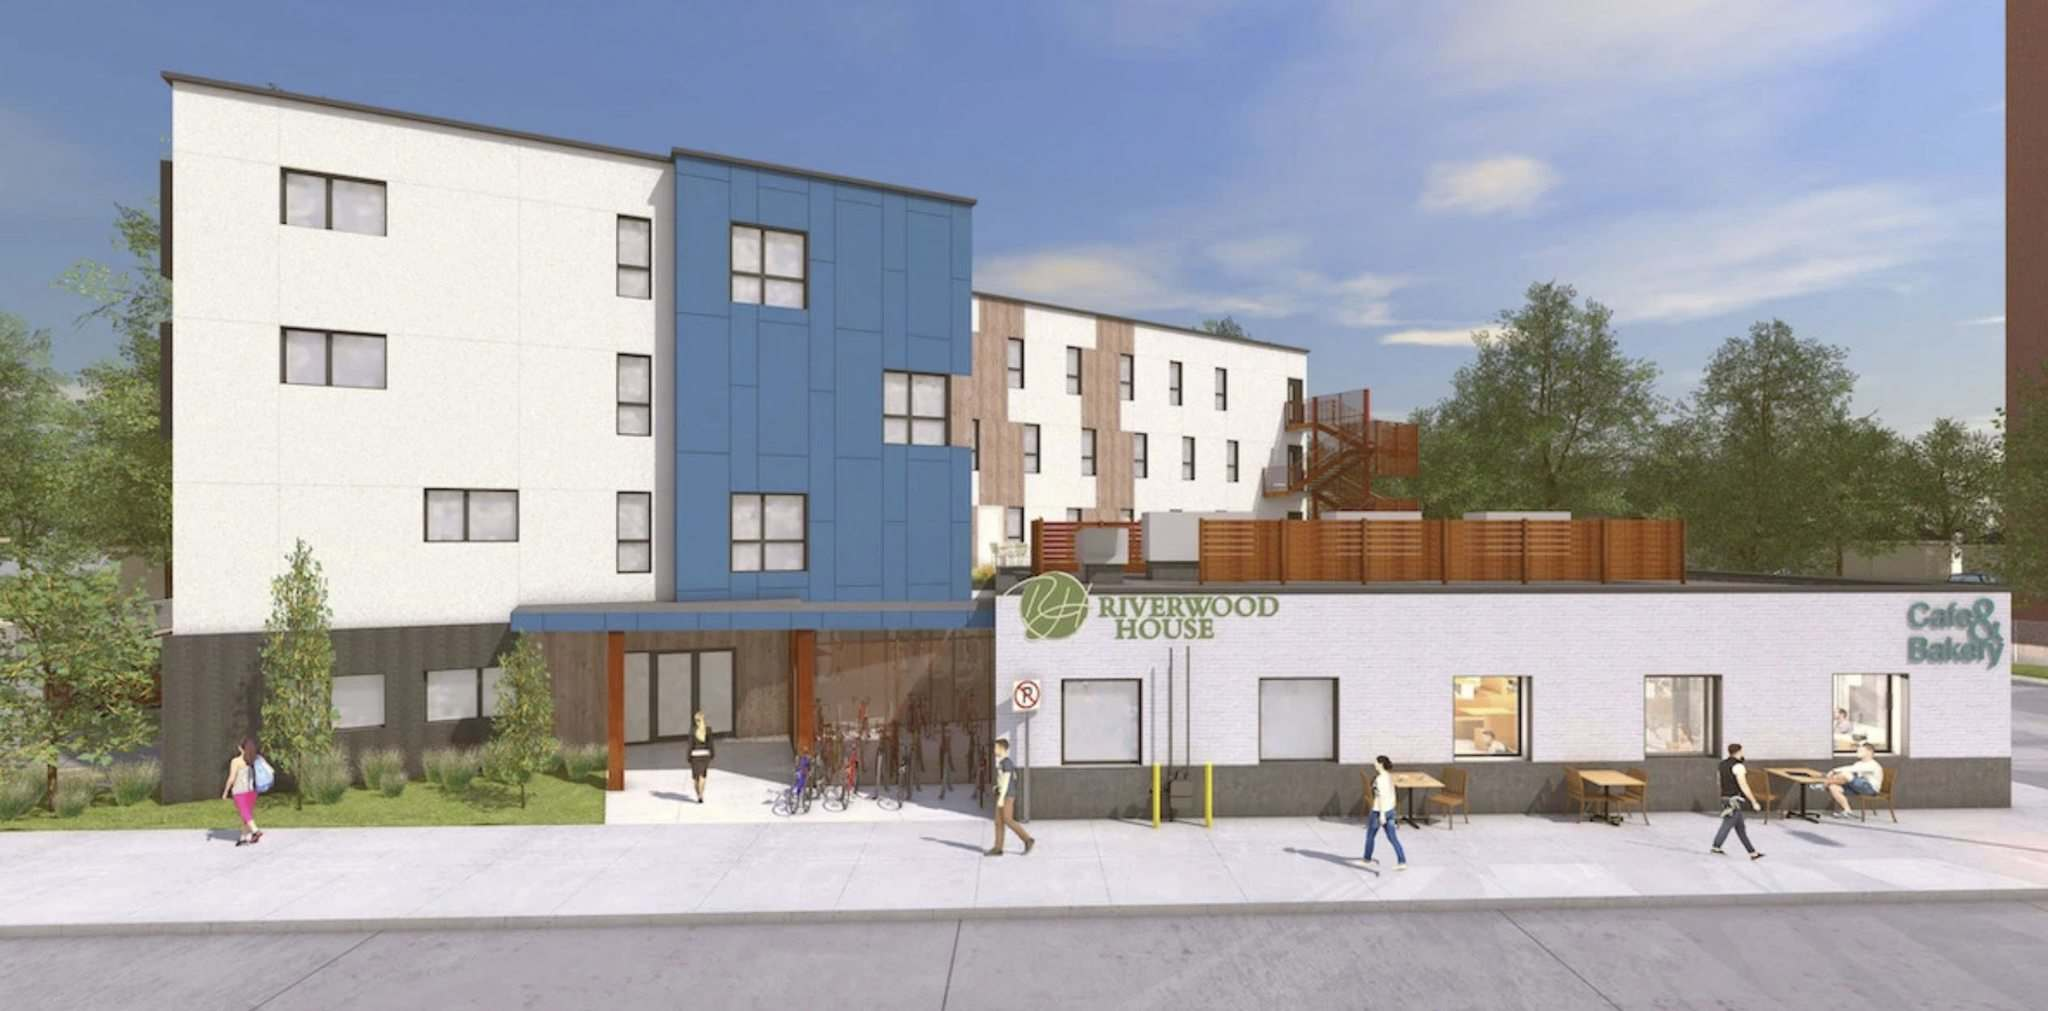 SPUTNIK ARCHITECTURE INC</p><p>The Riverwood Church Community on Talbot Avenue in Elmwood wants to turn the vacant lot and run-down building next to it into a four-storey, 40-unit sober living facility.</p><p>- for Carol Sanders story / Winnipeg Free Press 2019</p>